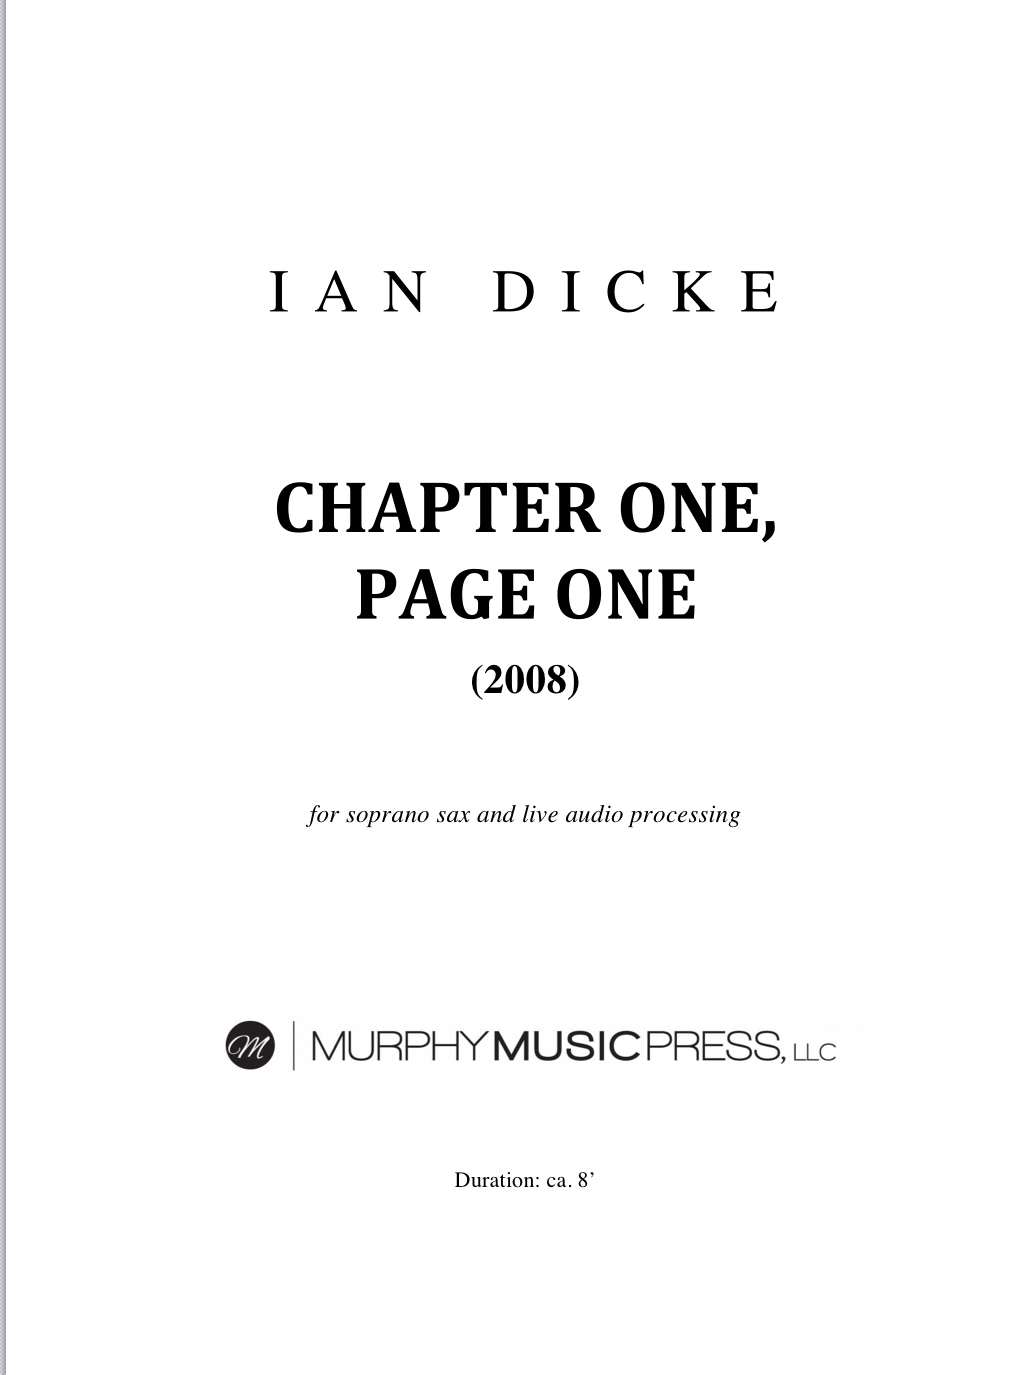 Chapter One, Page One by Ian Dicke